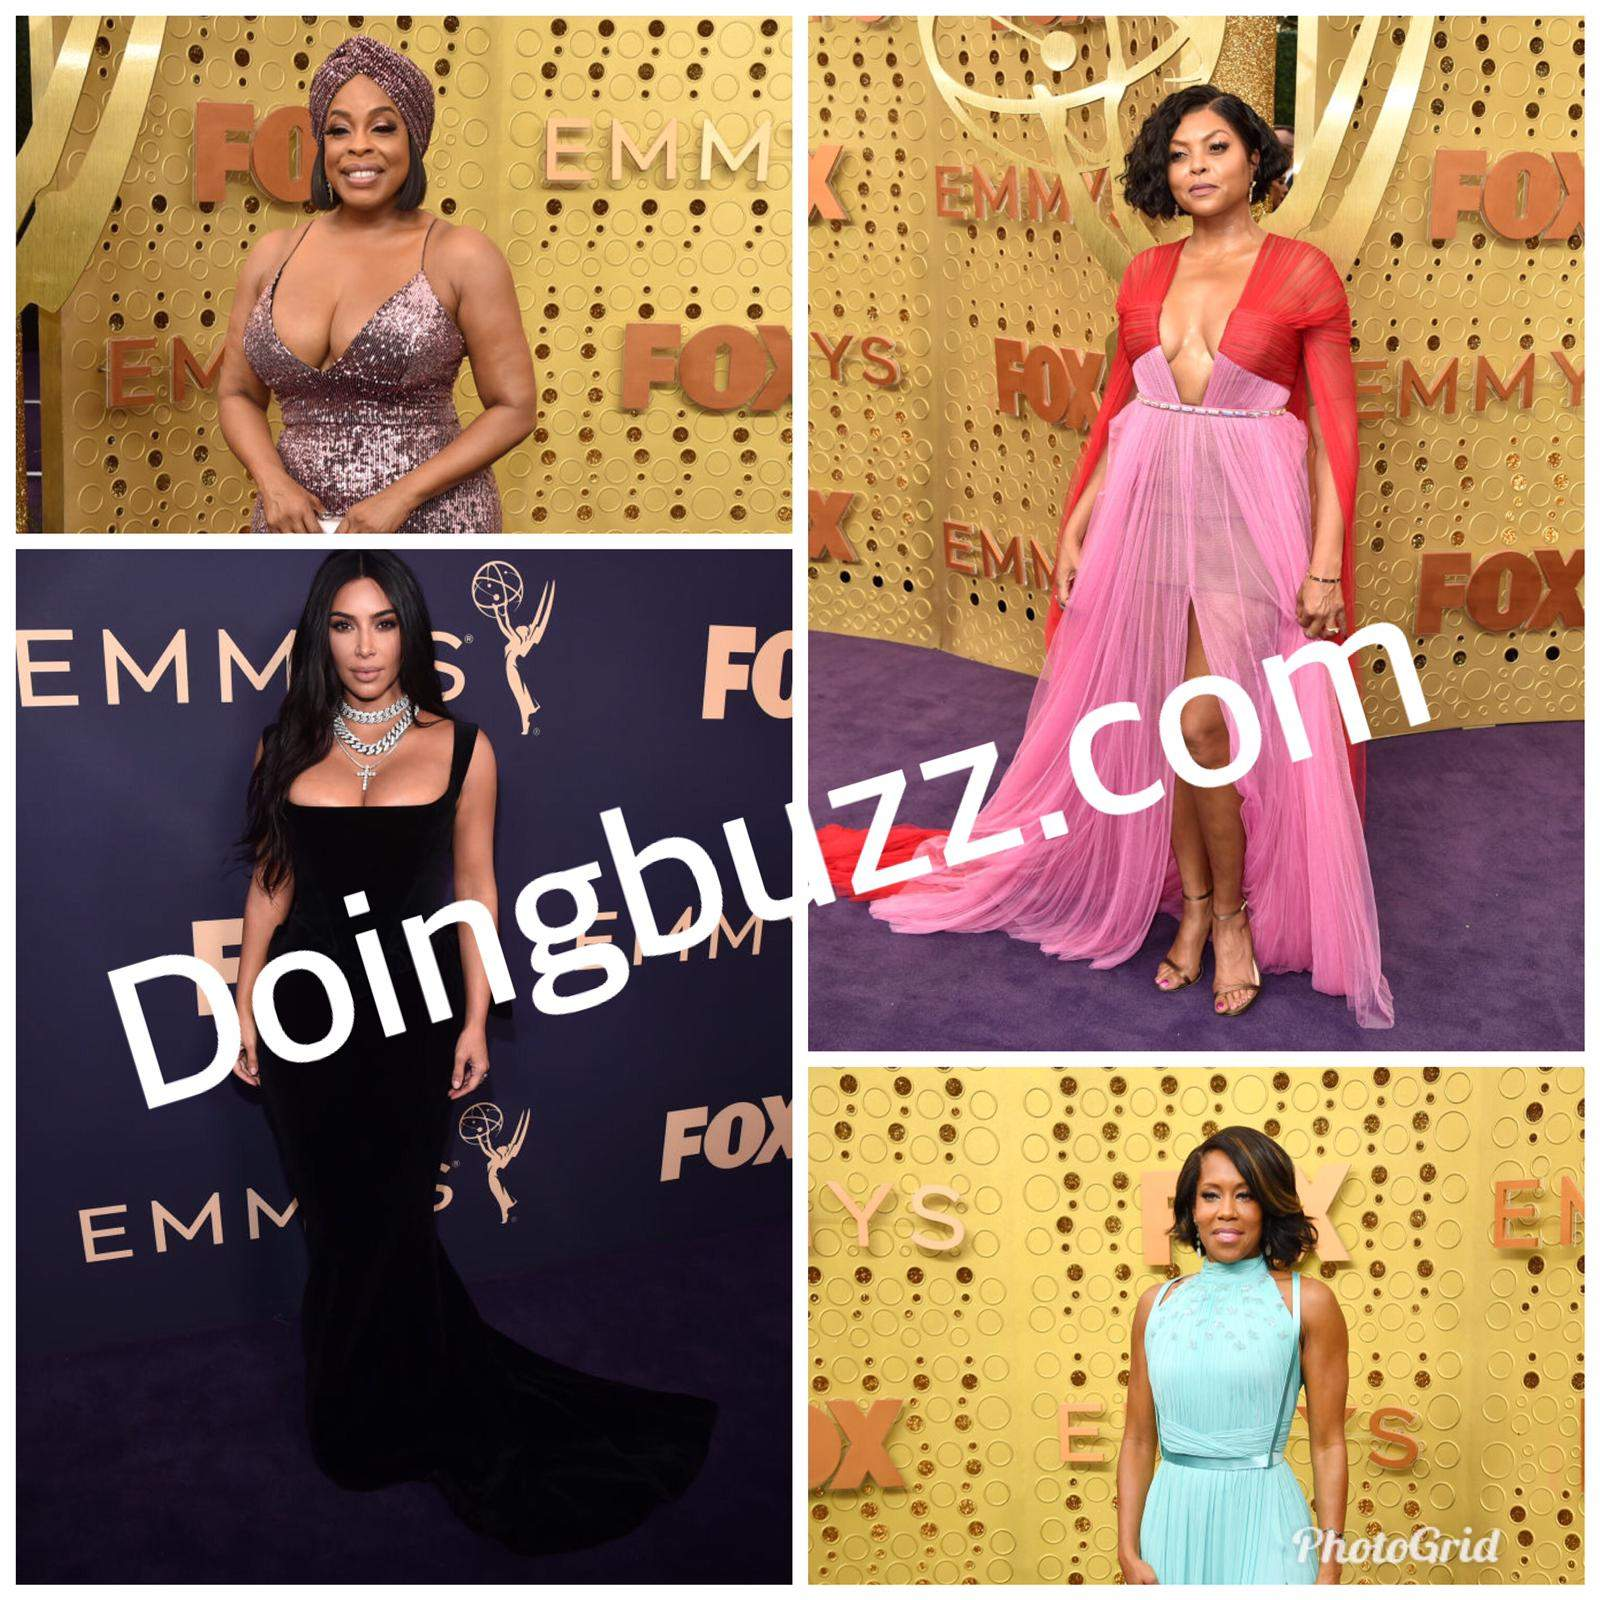 Les looks stars hollywoodiennes préférées arpentaient le tapis rouge BN Red Carpet Fab: 71st Emmy Awards | #Emmys